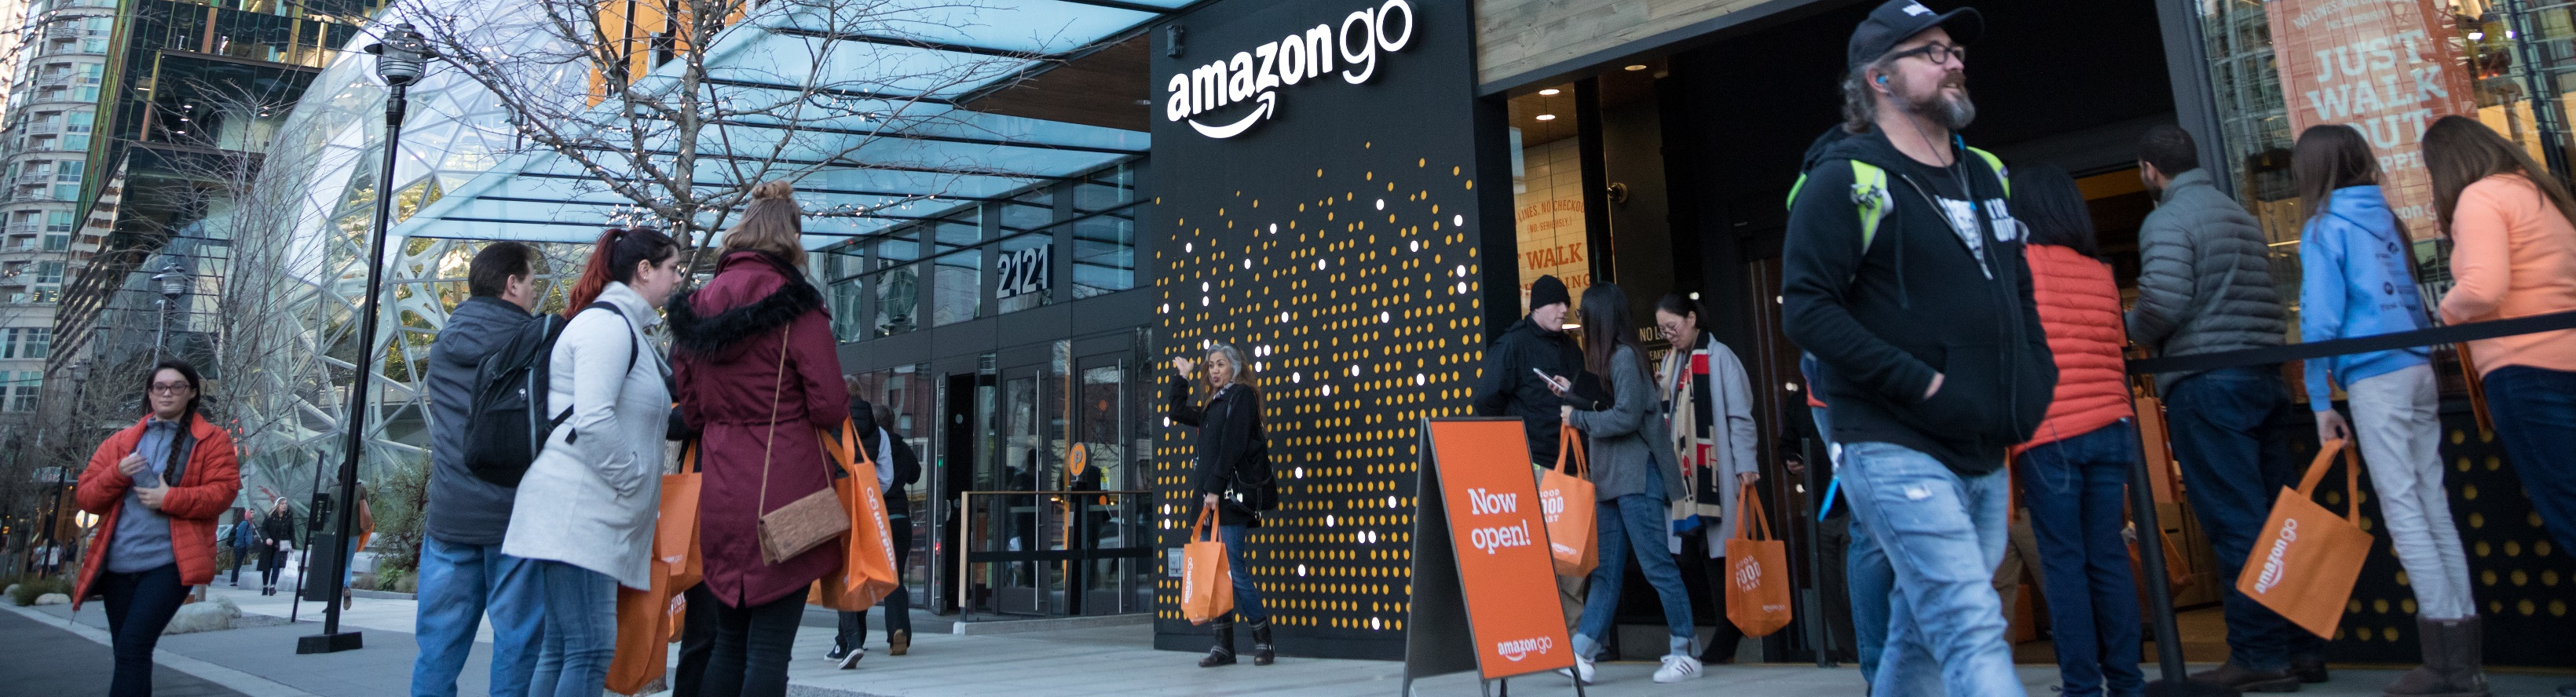 Amazon Go store